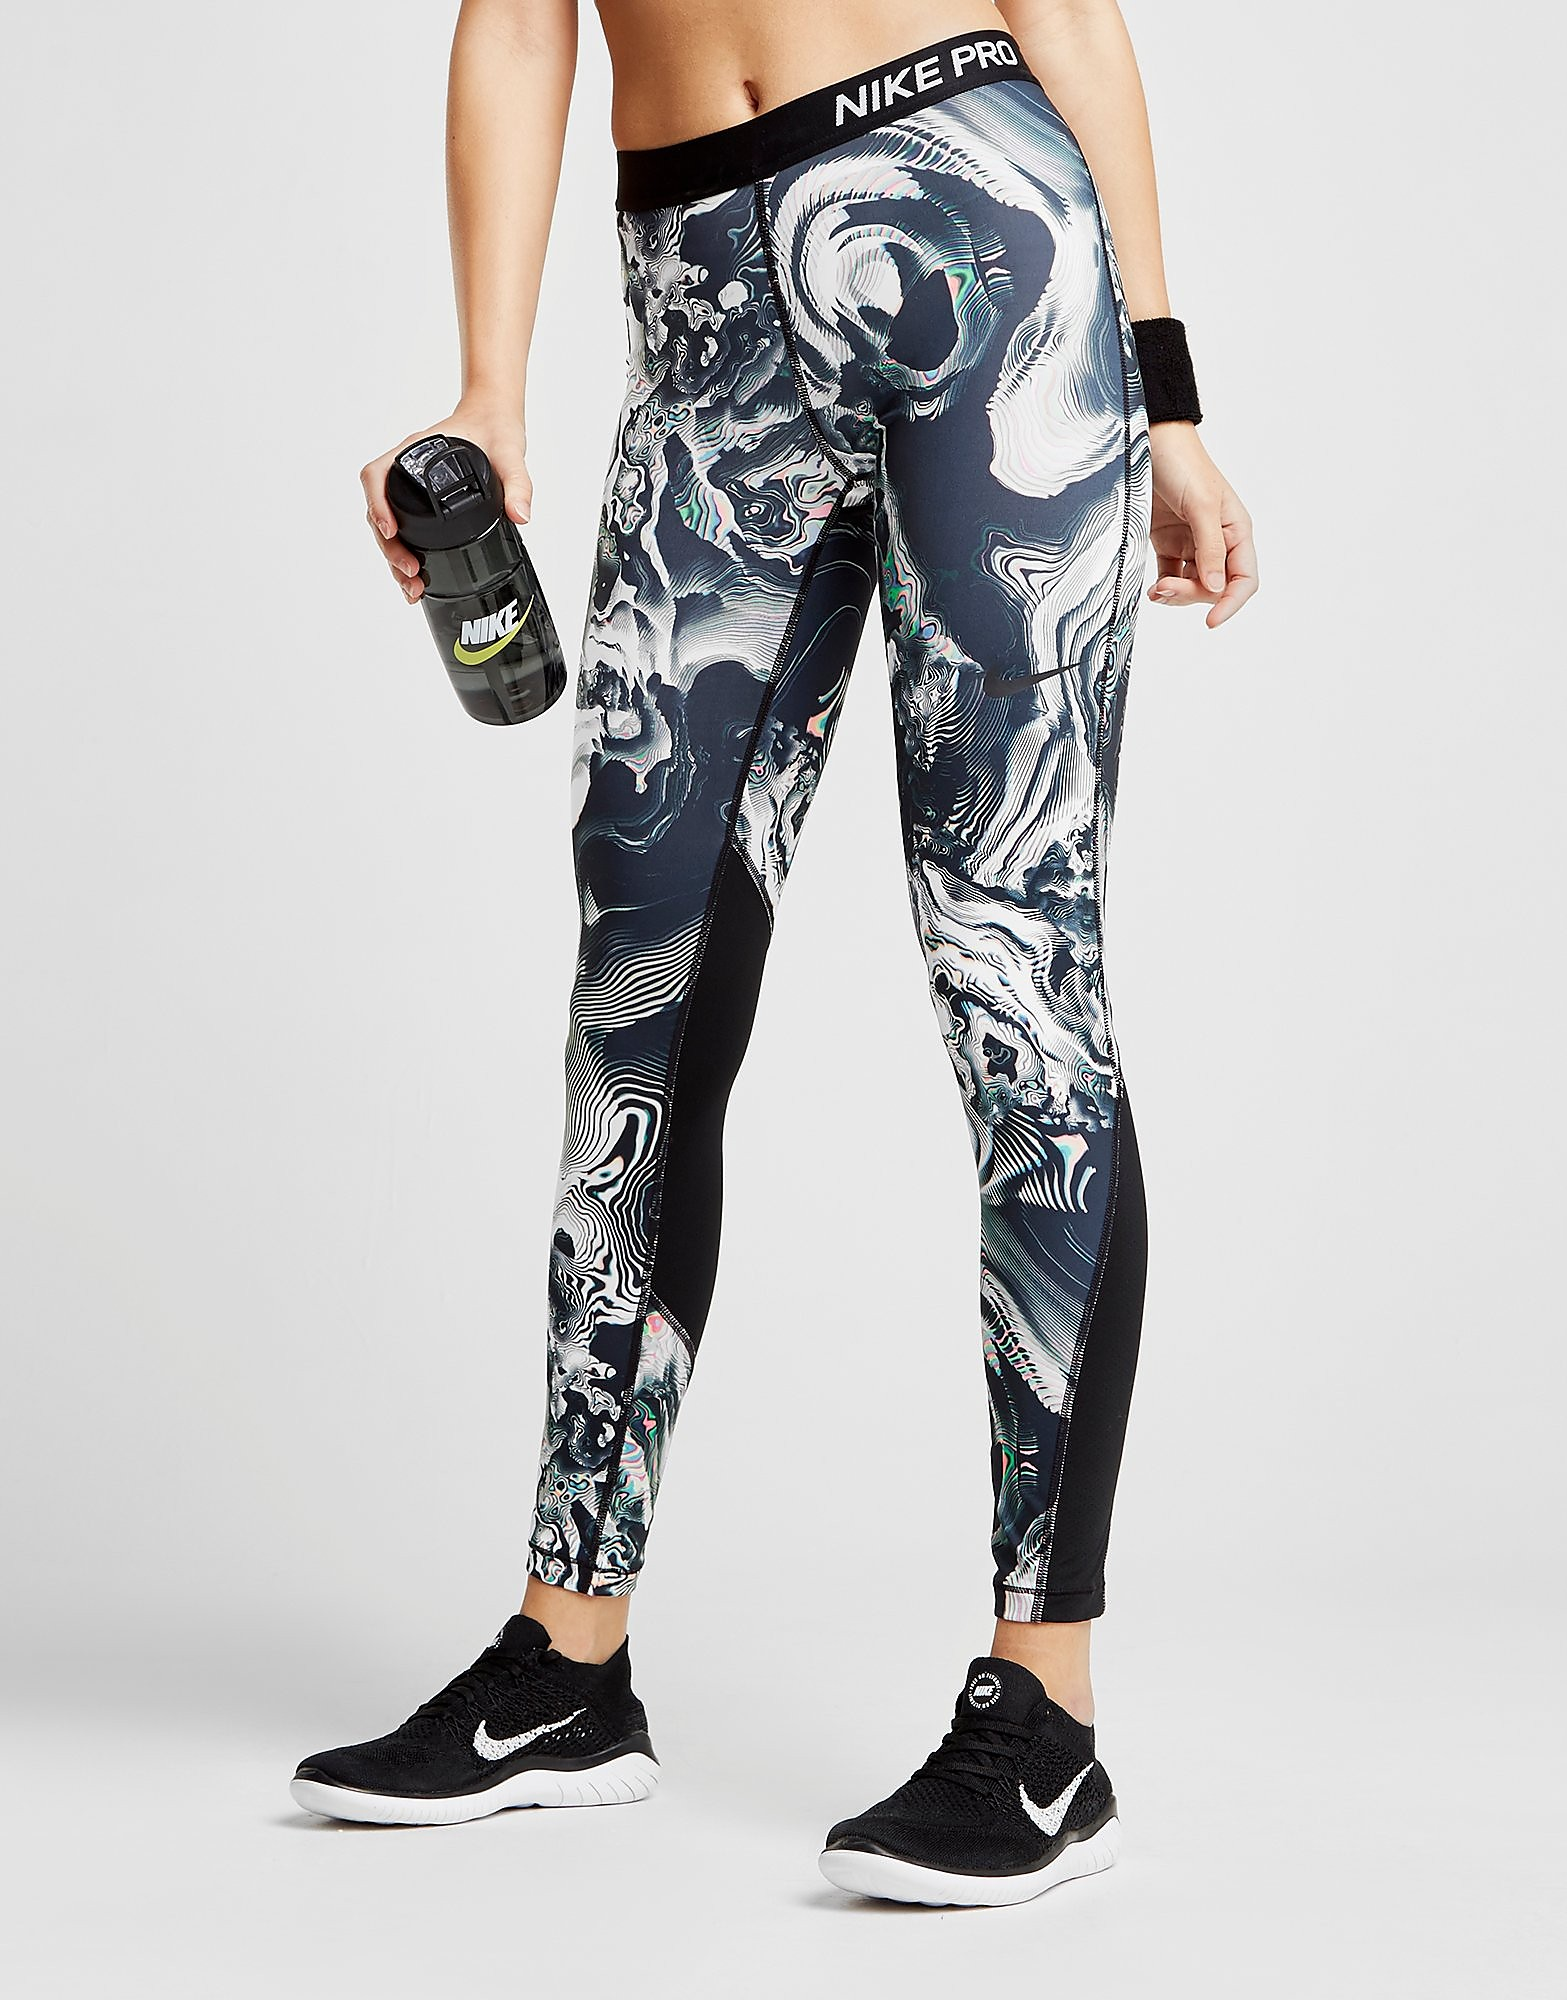 Nike Pro Marble Training Tights